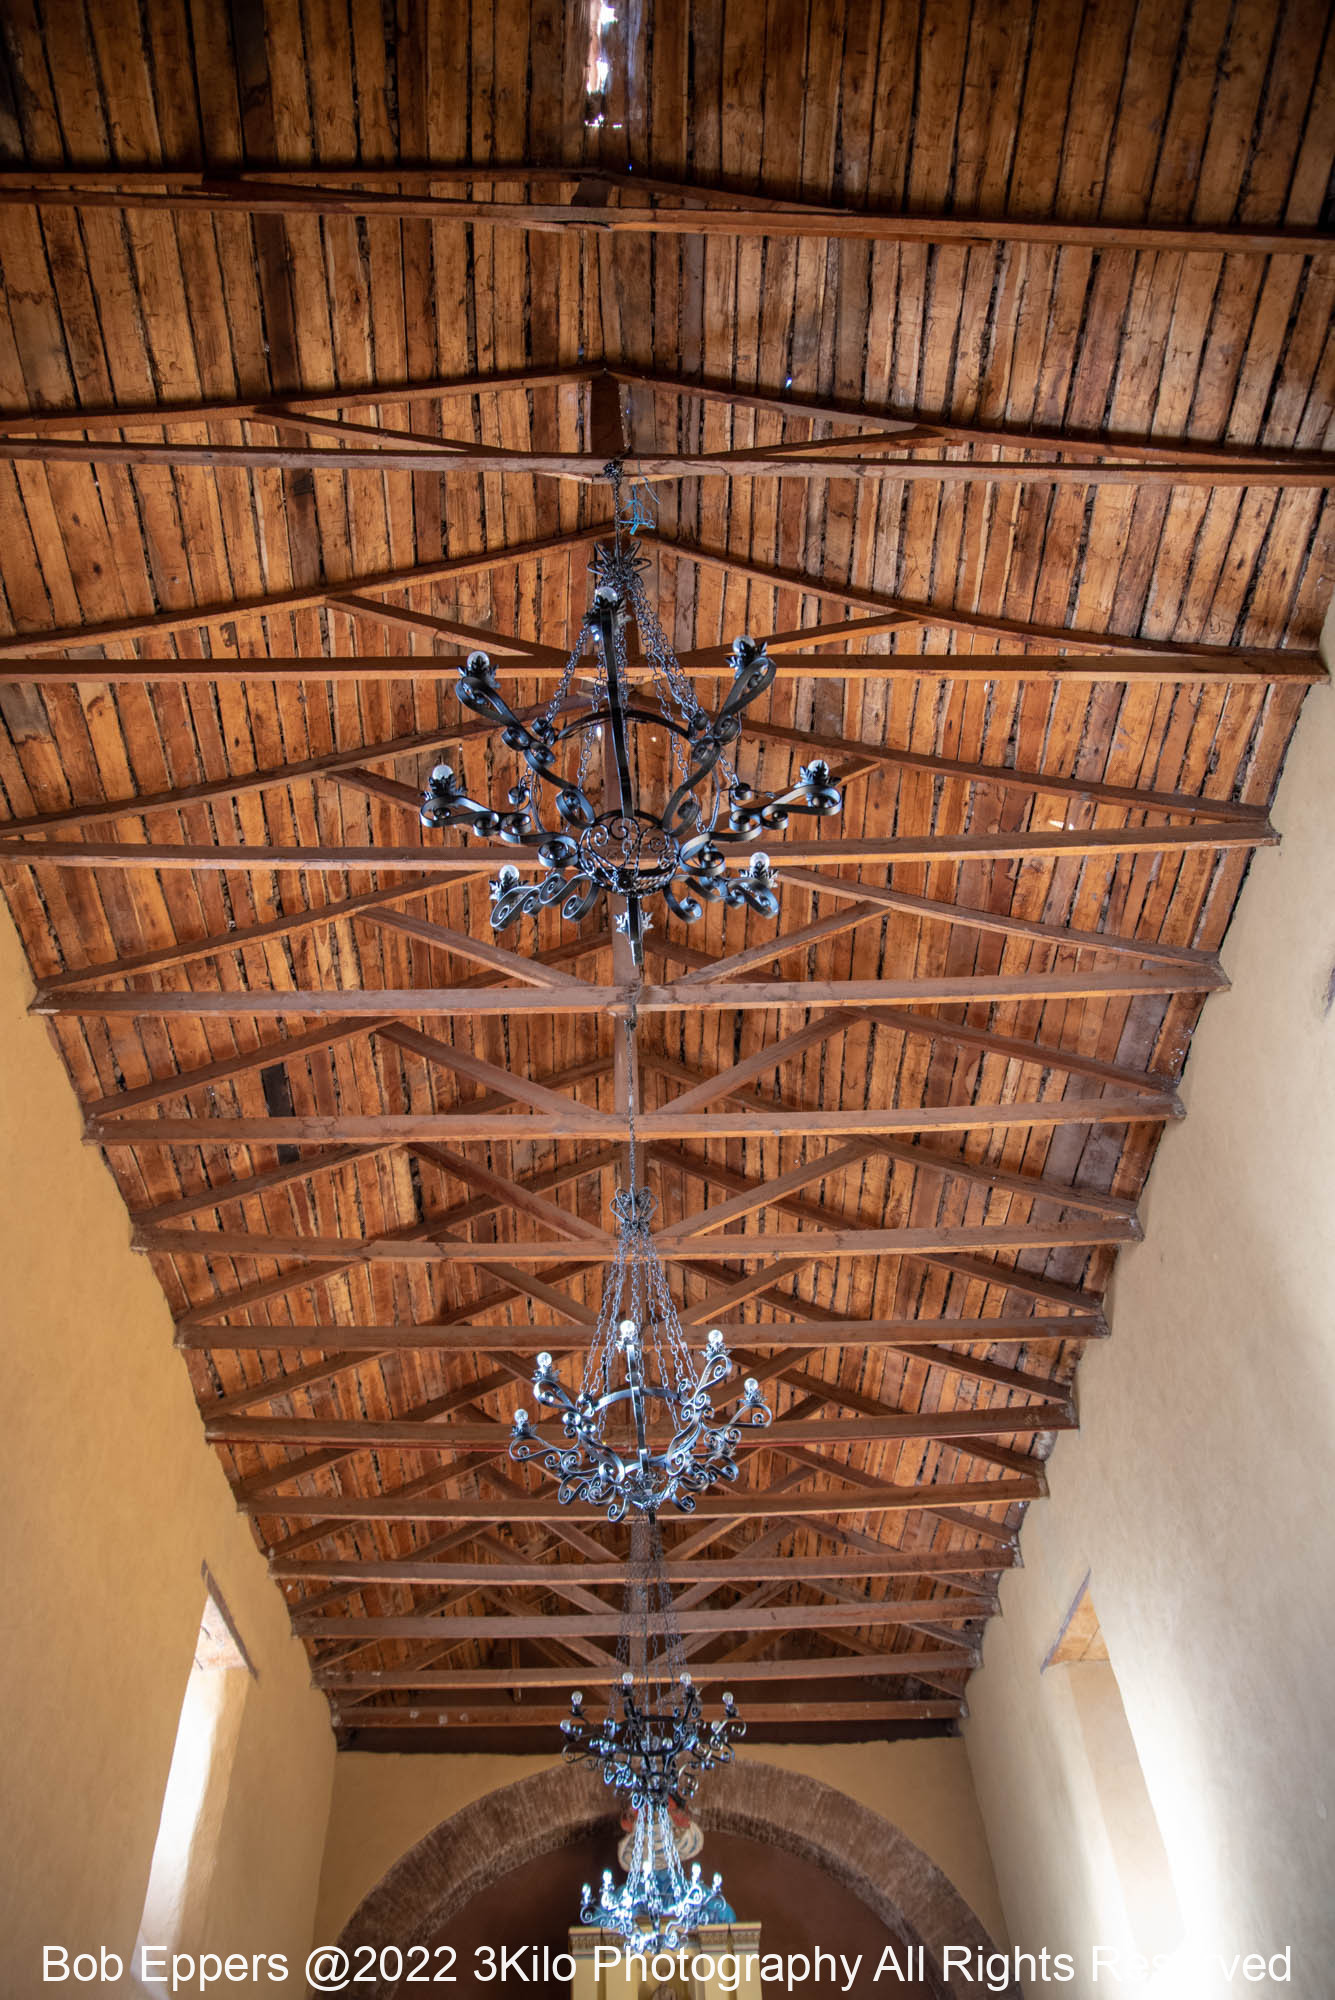 Photo of the Roof inside the Church at the Monastery.